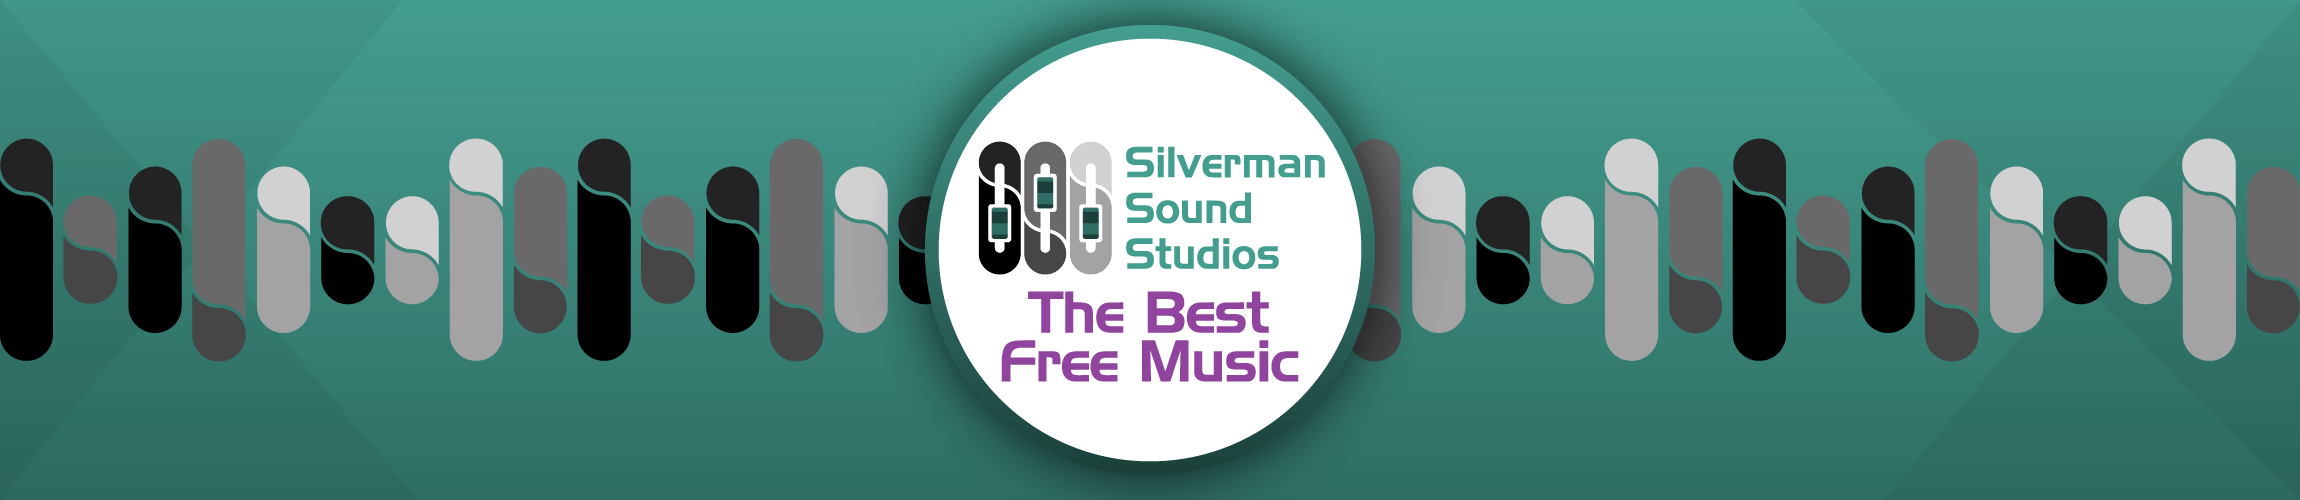 Welcome to Silverman Sound Studios